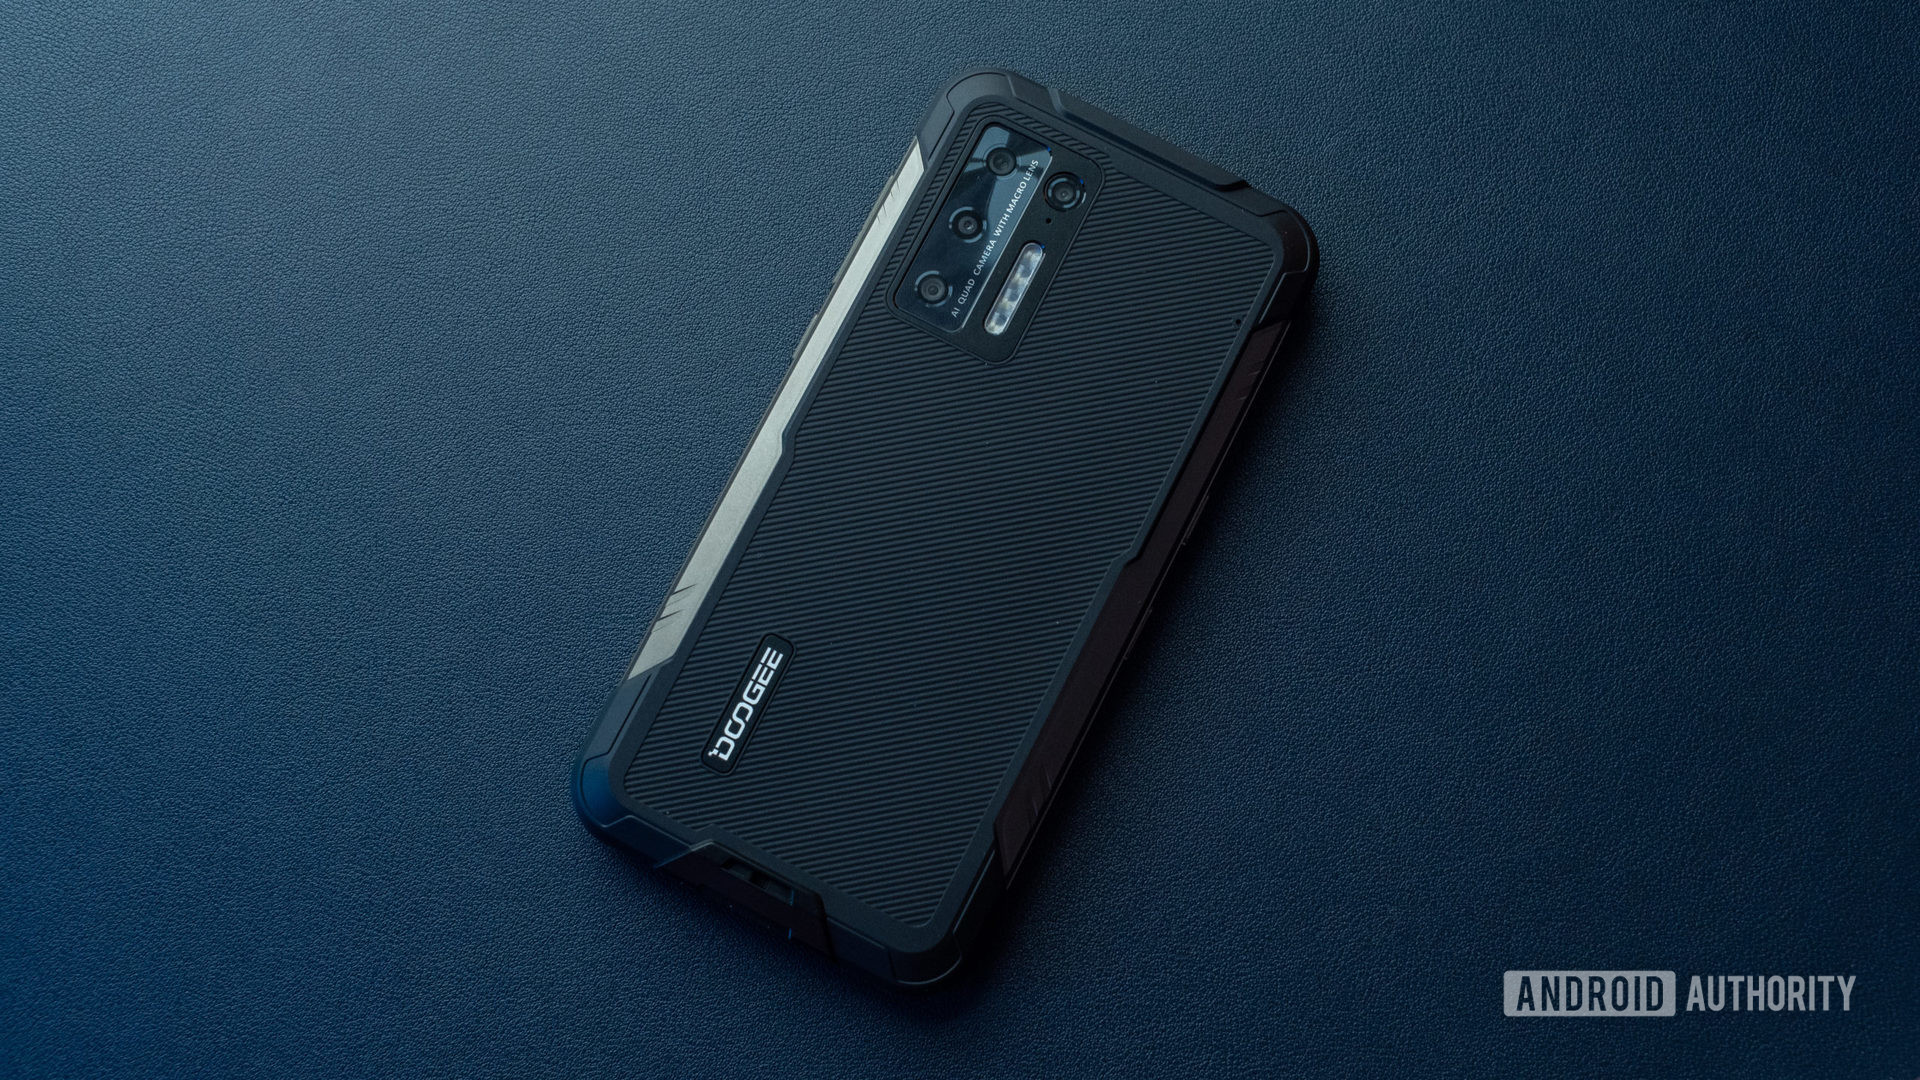 Photo of Doogee S97 Pro sitting on blue table